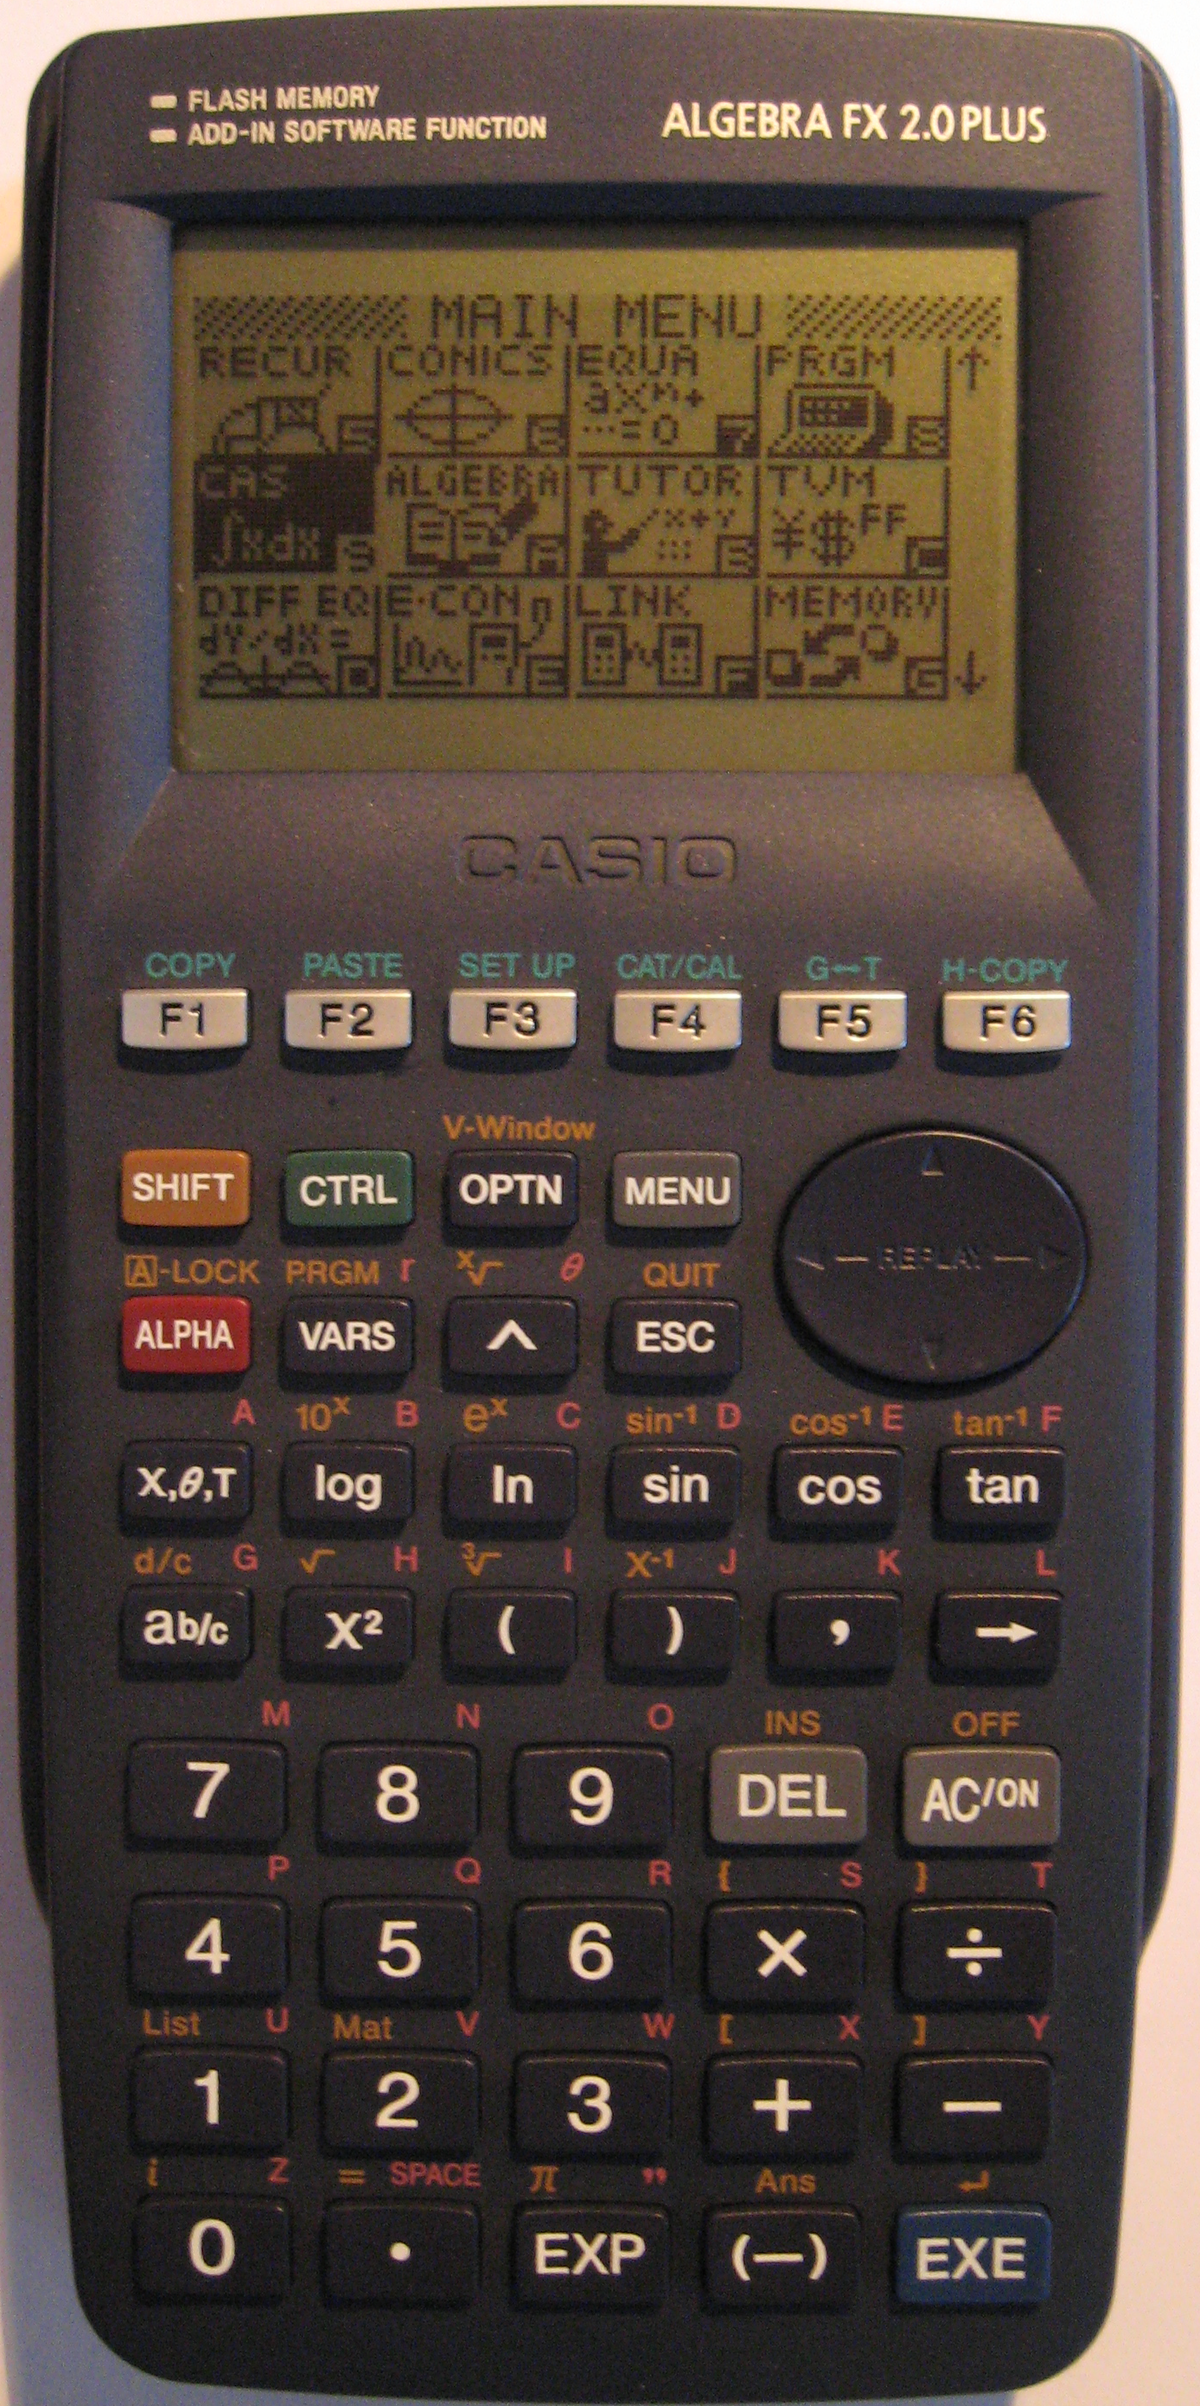 Casio algebra fx series wikipedia.